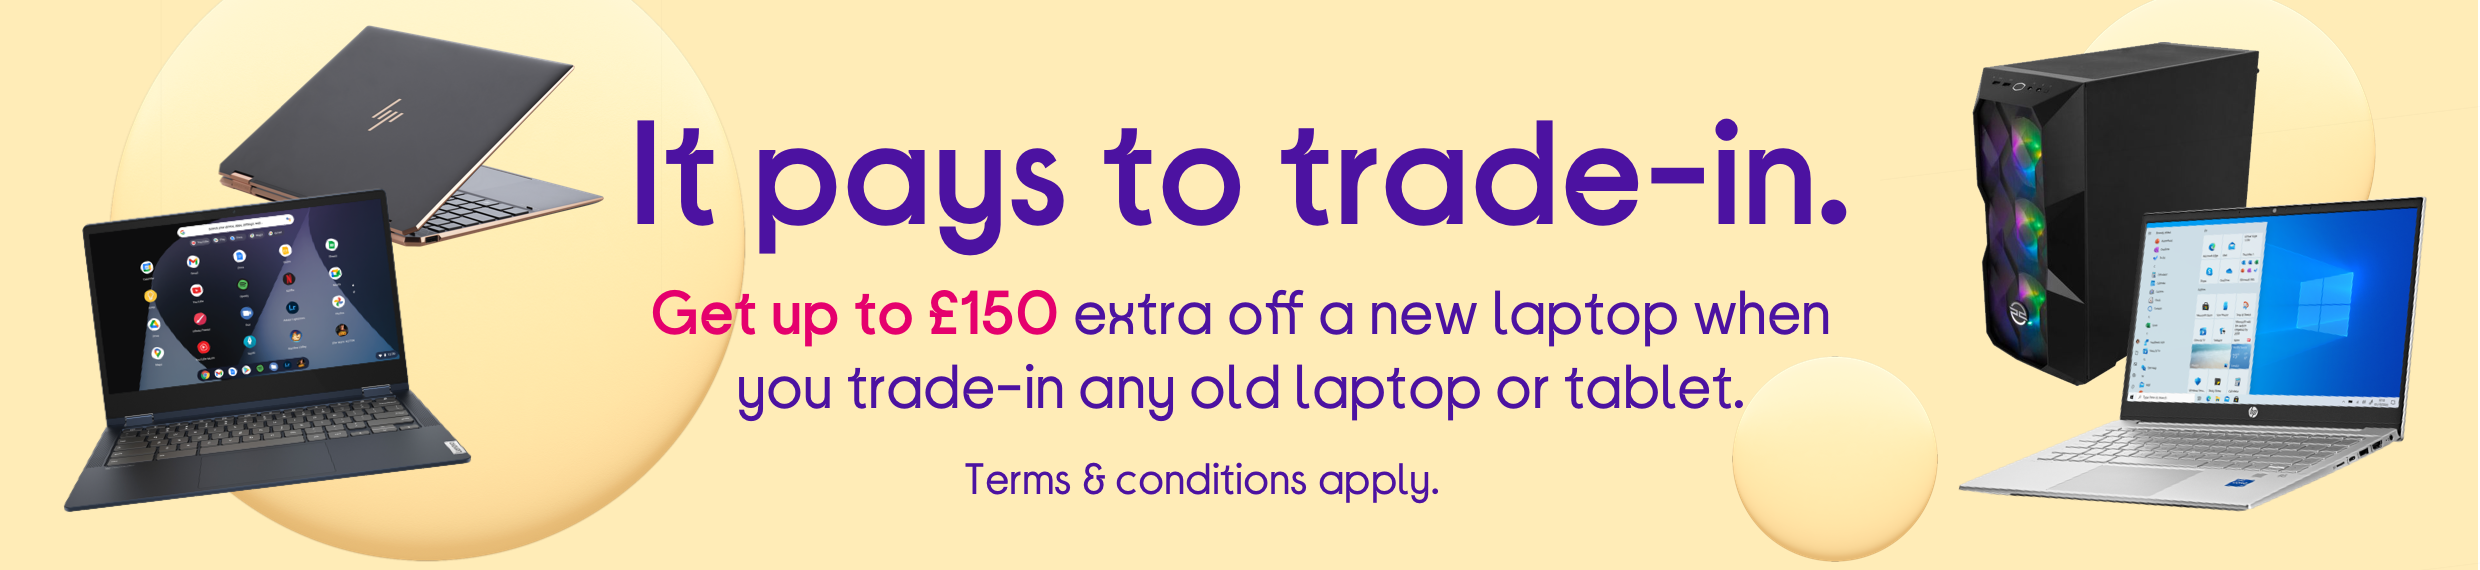 Trade-in any old laptop or tablet